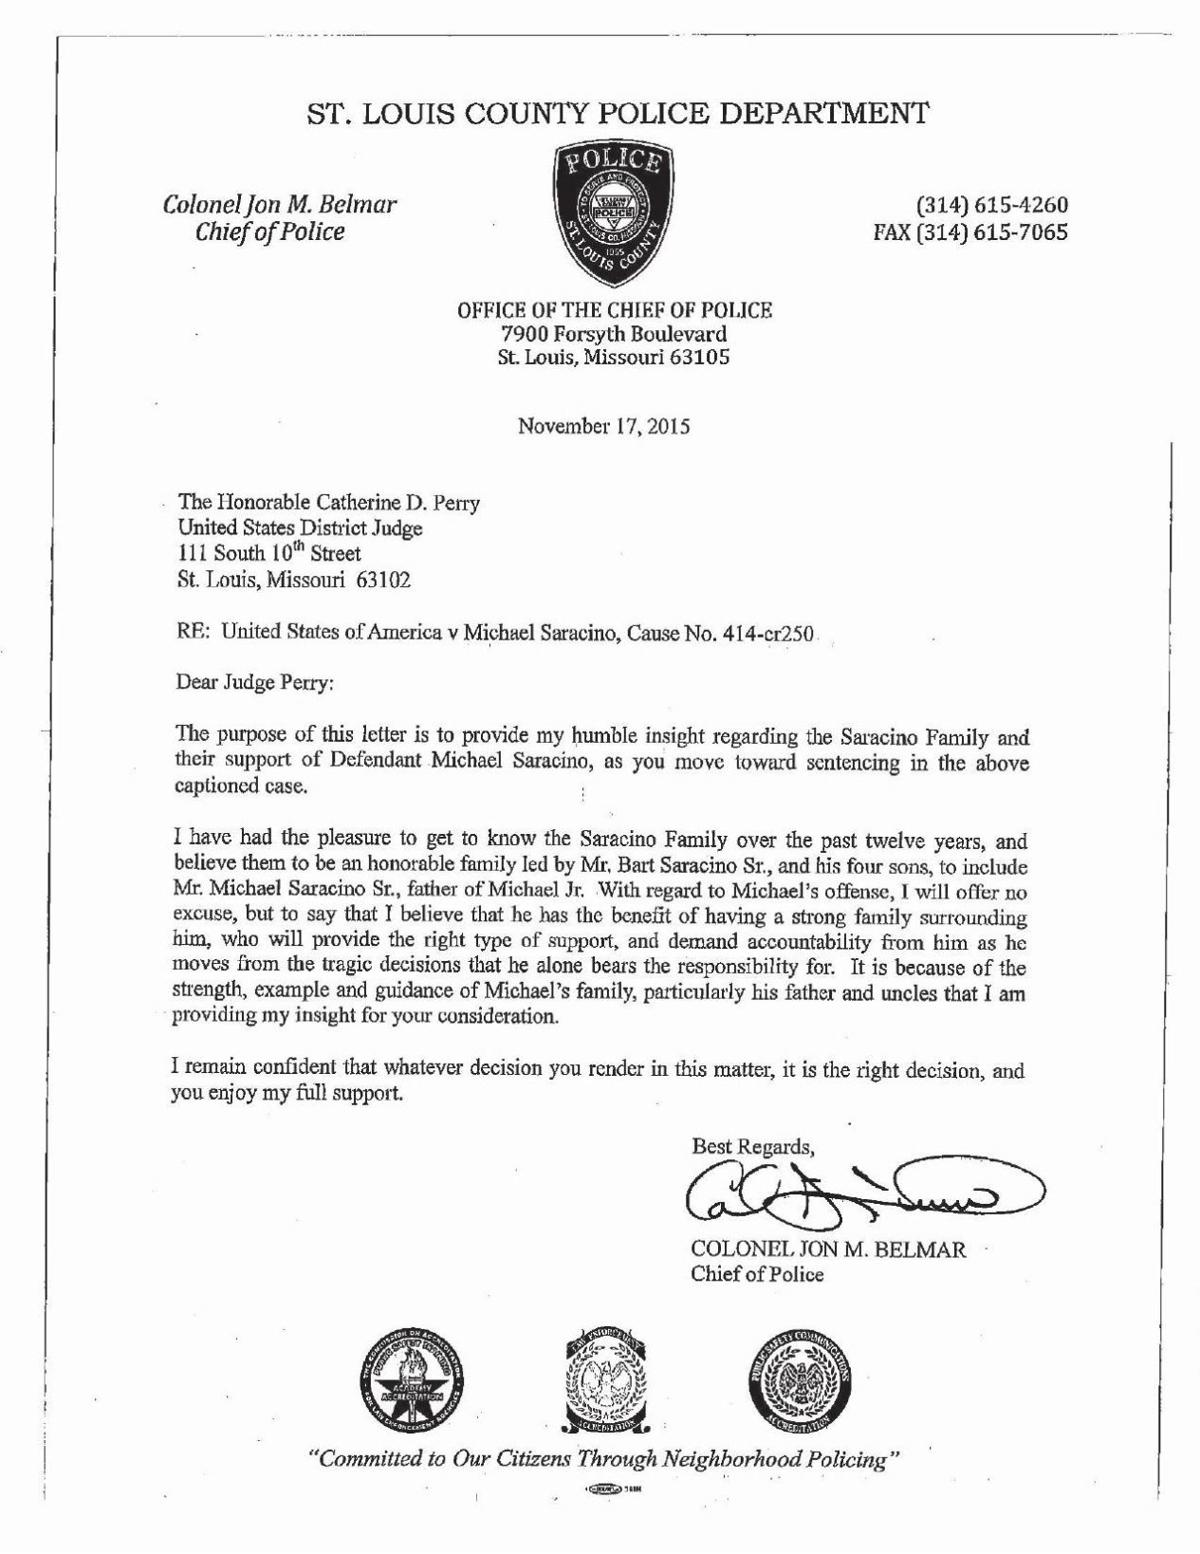 Letters of support about Michael Saracino II